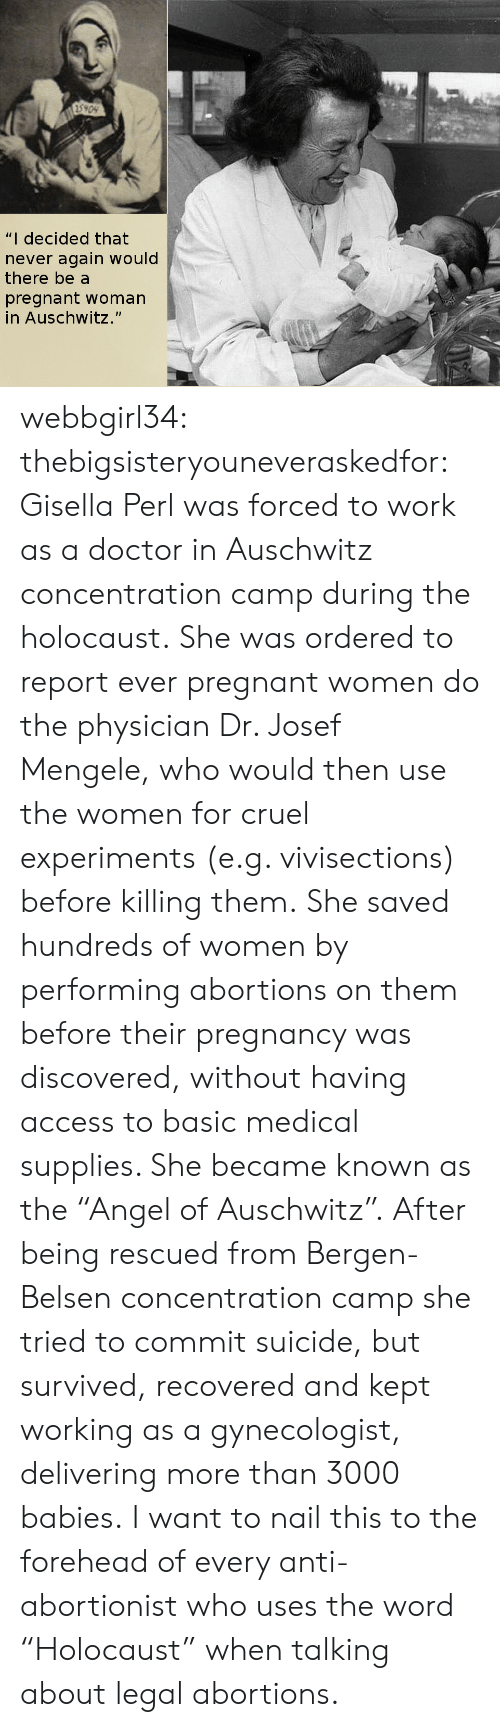 """perl: 5909  """"I decided that  never again would  there be a  pregnant woman  in Auschwitz."""" webbgirl34:  thebigsisteryouneveraskedfor:  Gisella Perl was forced to work as a doctor in Auschwitz concentration camp during the holocaust. She was ordered to report ever pregnant women do the physician Dr. Josef Mengele, who would then use the women for cruel experiments (e.g. vivisections) before killing them. She saved hundreds of women by performing abortions on them before their pregnancy was discovered, without having access to basic medical supplies. She became known as the """"Angel of Auschwitz"""". After being rescued from Bergen-Belsen concentration camp she tried to commit suicide, but survived, recovered and kept working as a gynecologist, delivering more than 3000 babies.  I want to nail this to the forehead of every anti-abortionist who uses the word """"Holocaust"""" when talking about legal abortions."""